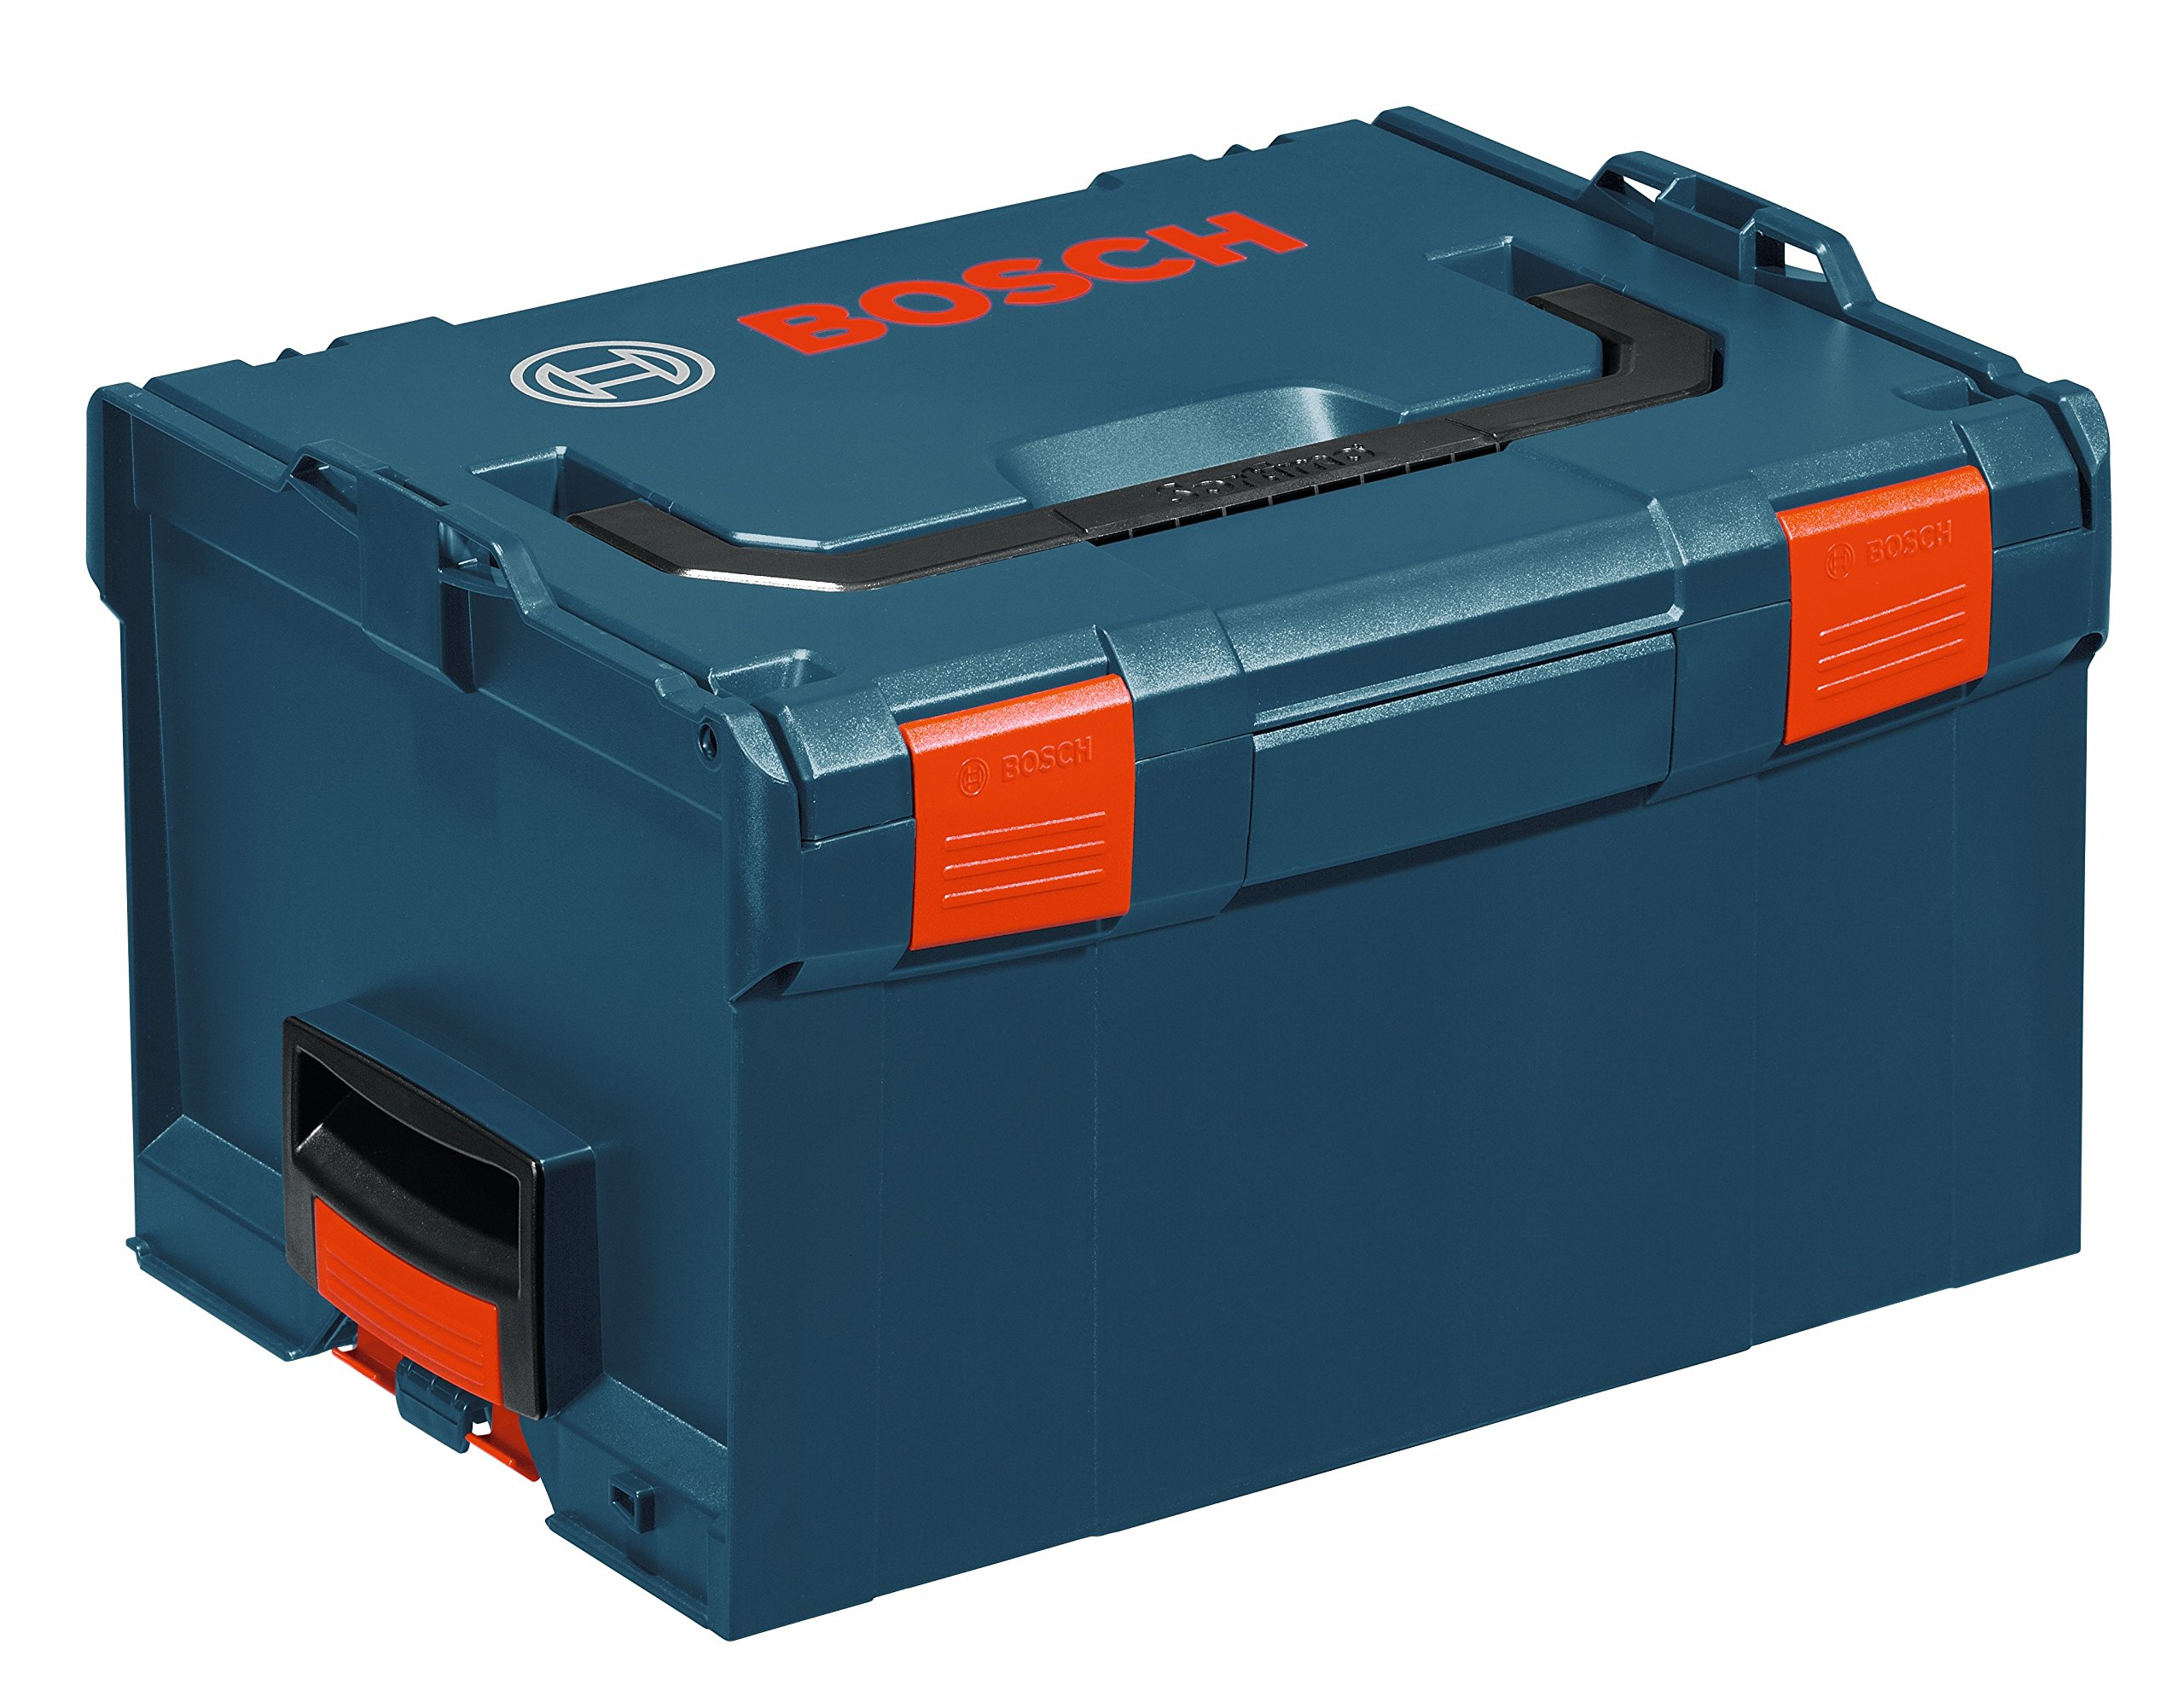 Bosch L-BOXX-3 10 In. x 14 In. x 17.5 In. Stackable Tool Storage Case,Blue